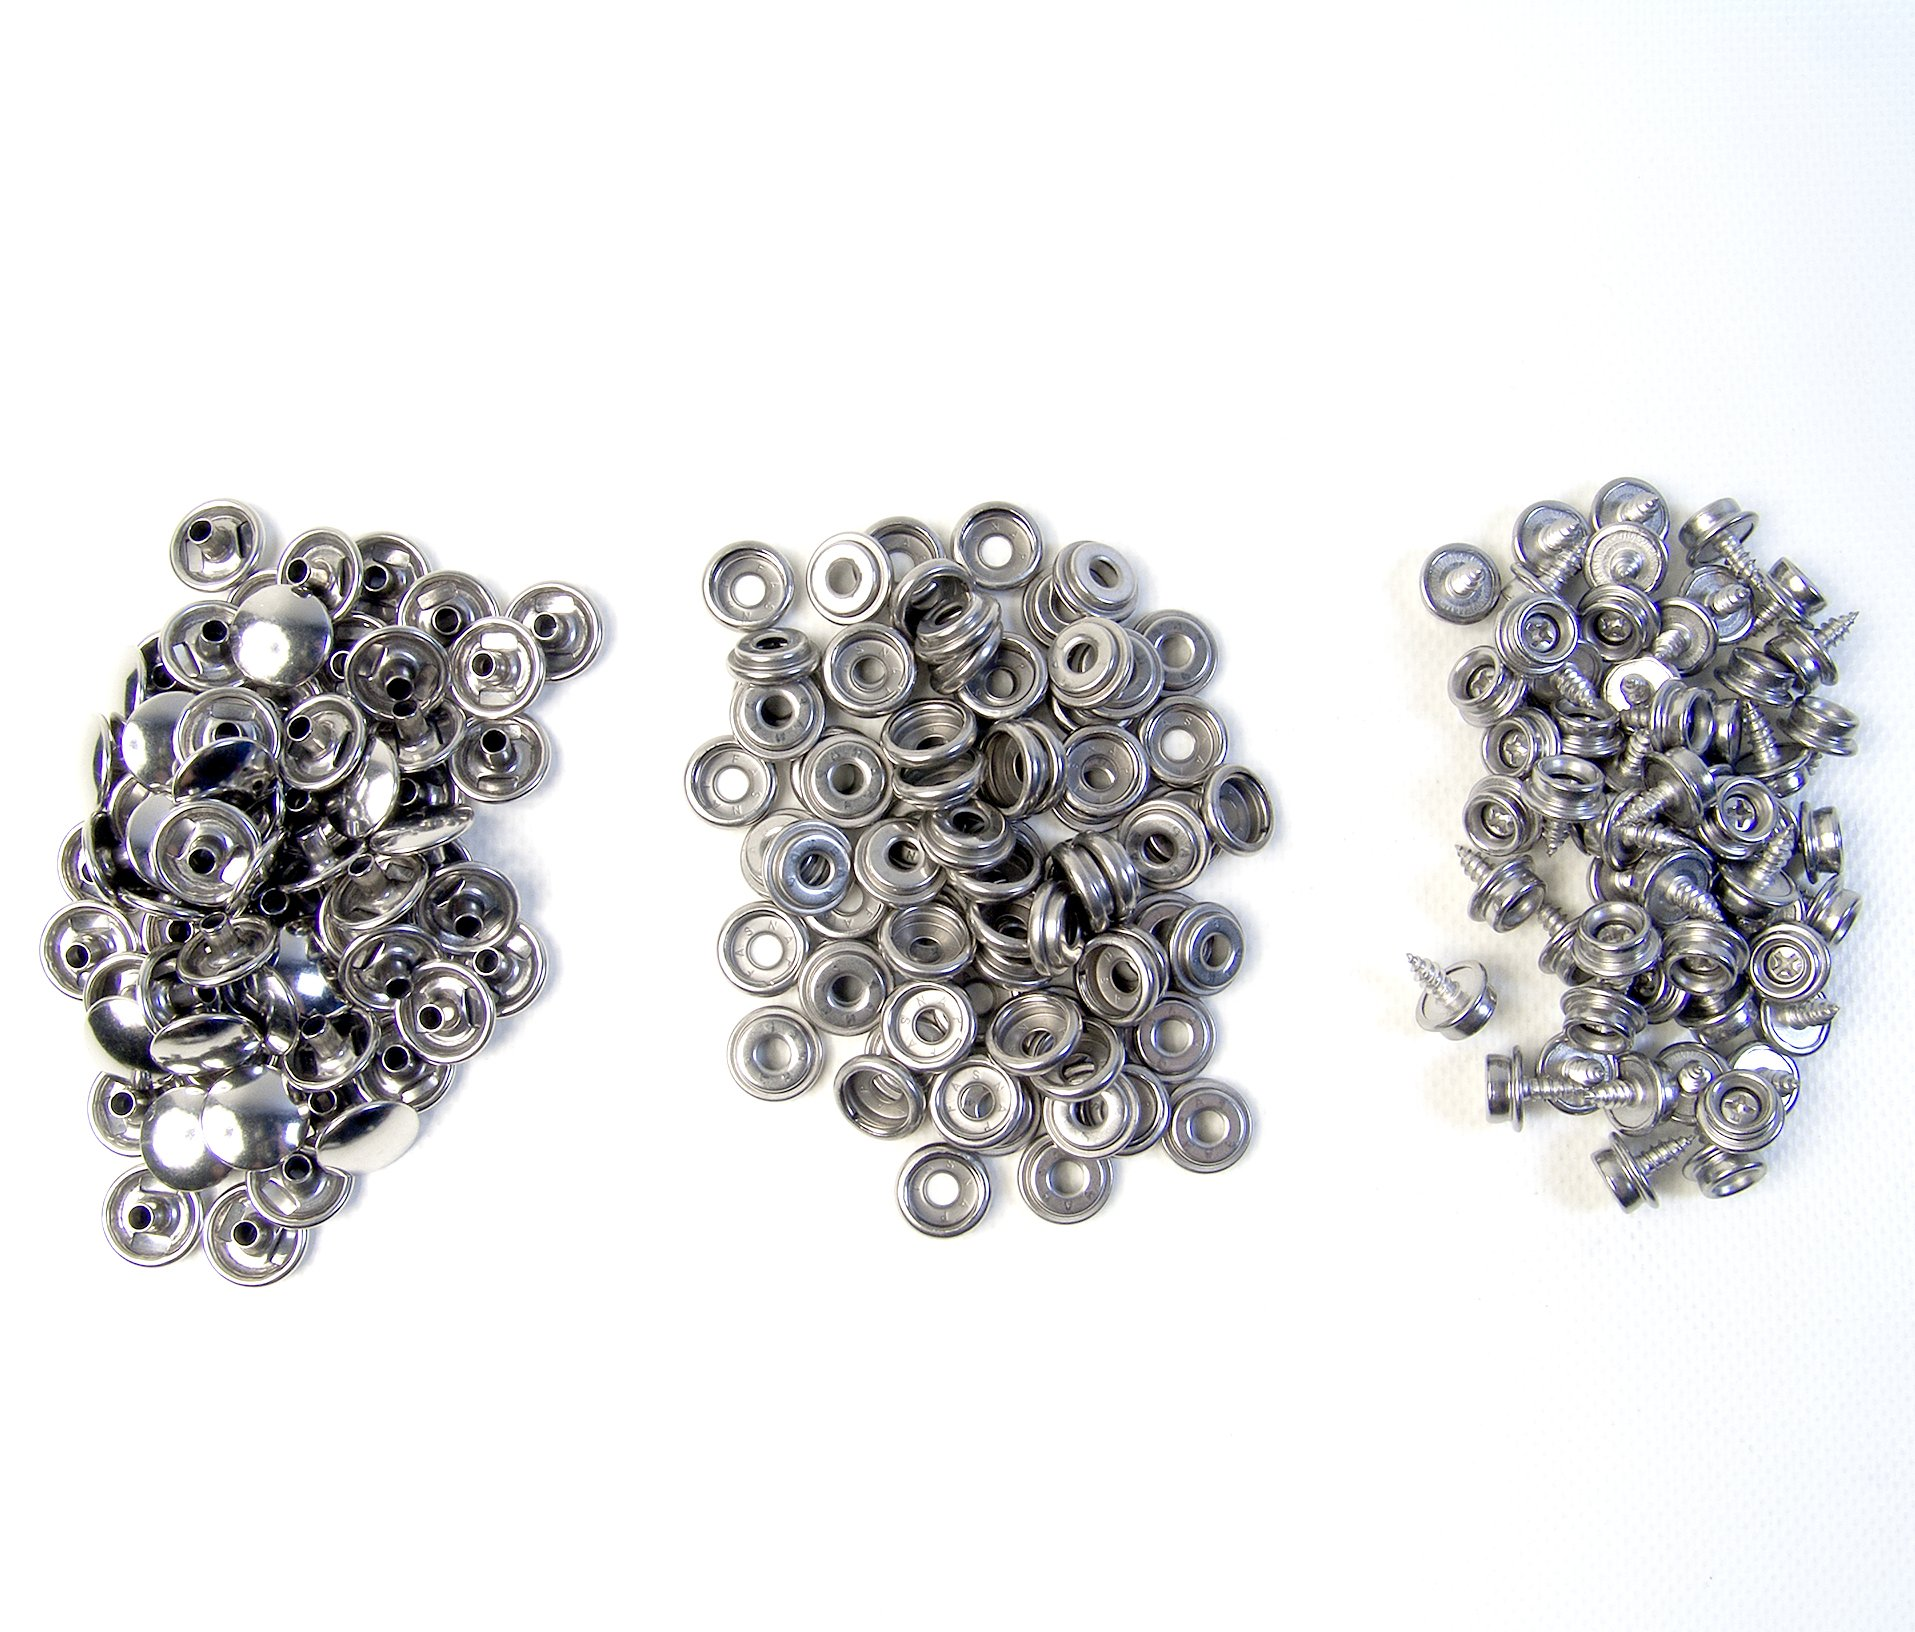 150 Piece 100% Stainless Steel Boat Marine Canvas Upholstery Snap & Stud Fastener Kit: 50 Snaps / 50 3/8'' Screw In Snap Studs by Northwest Tarp & Canvas